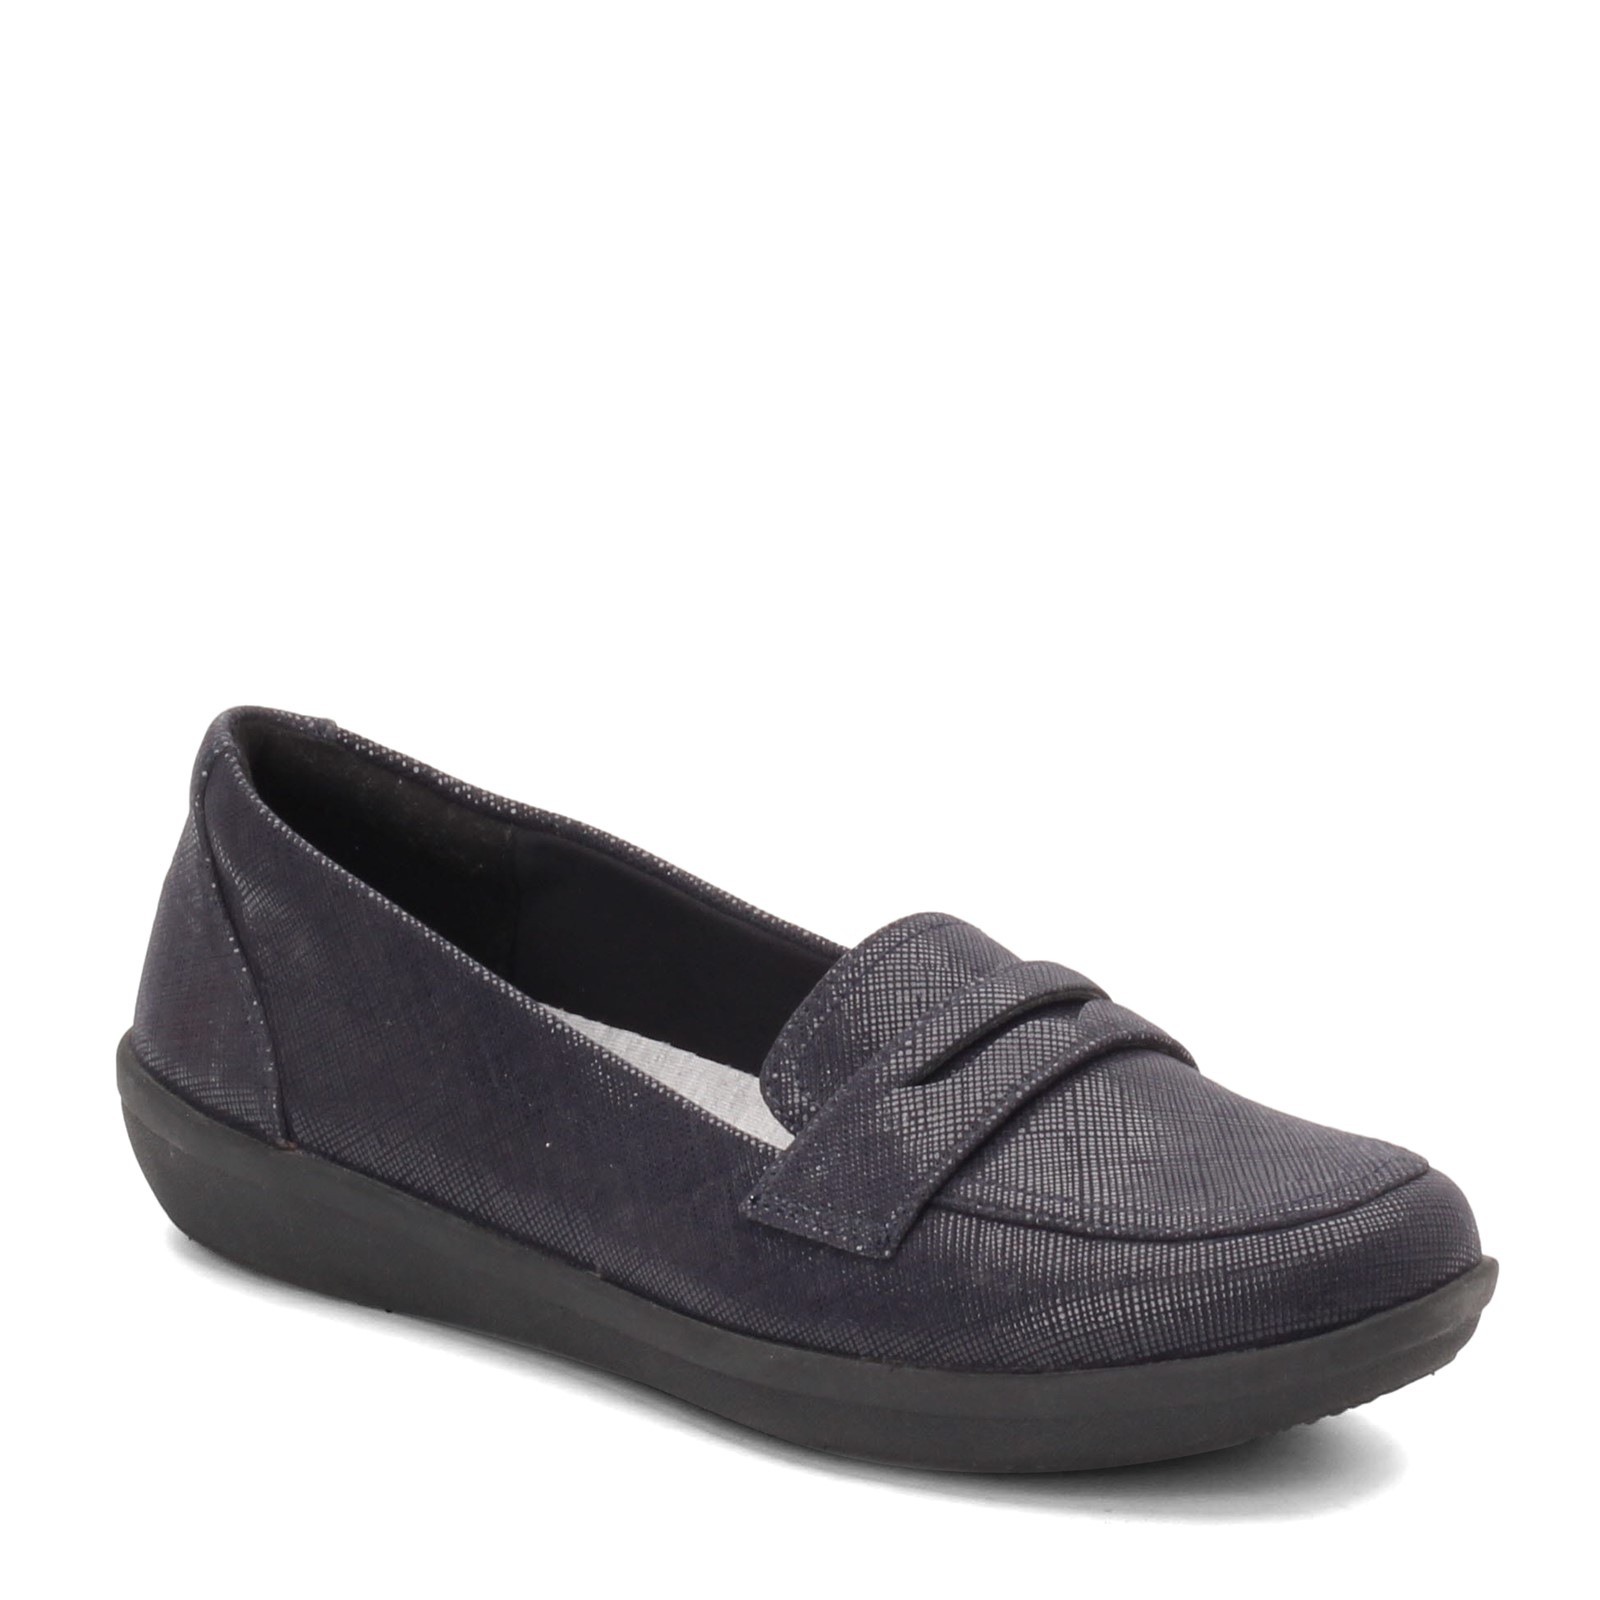 ladies casual slip on shoe Clarks Ayla Form